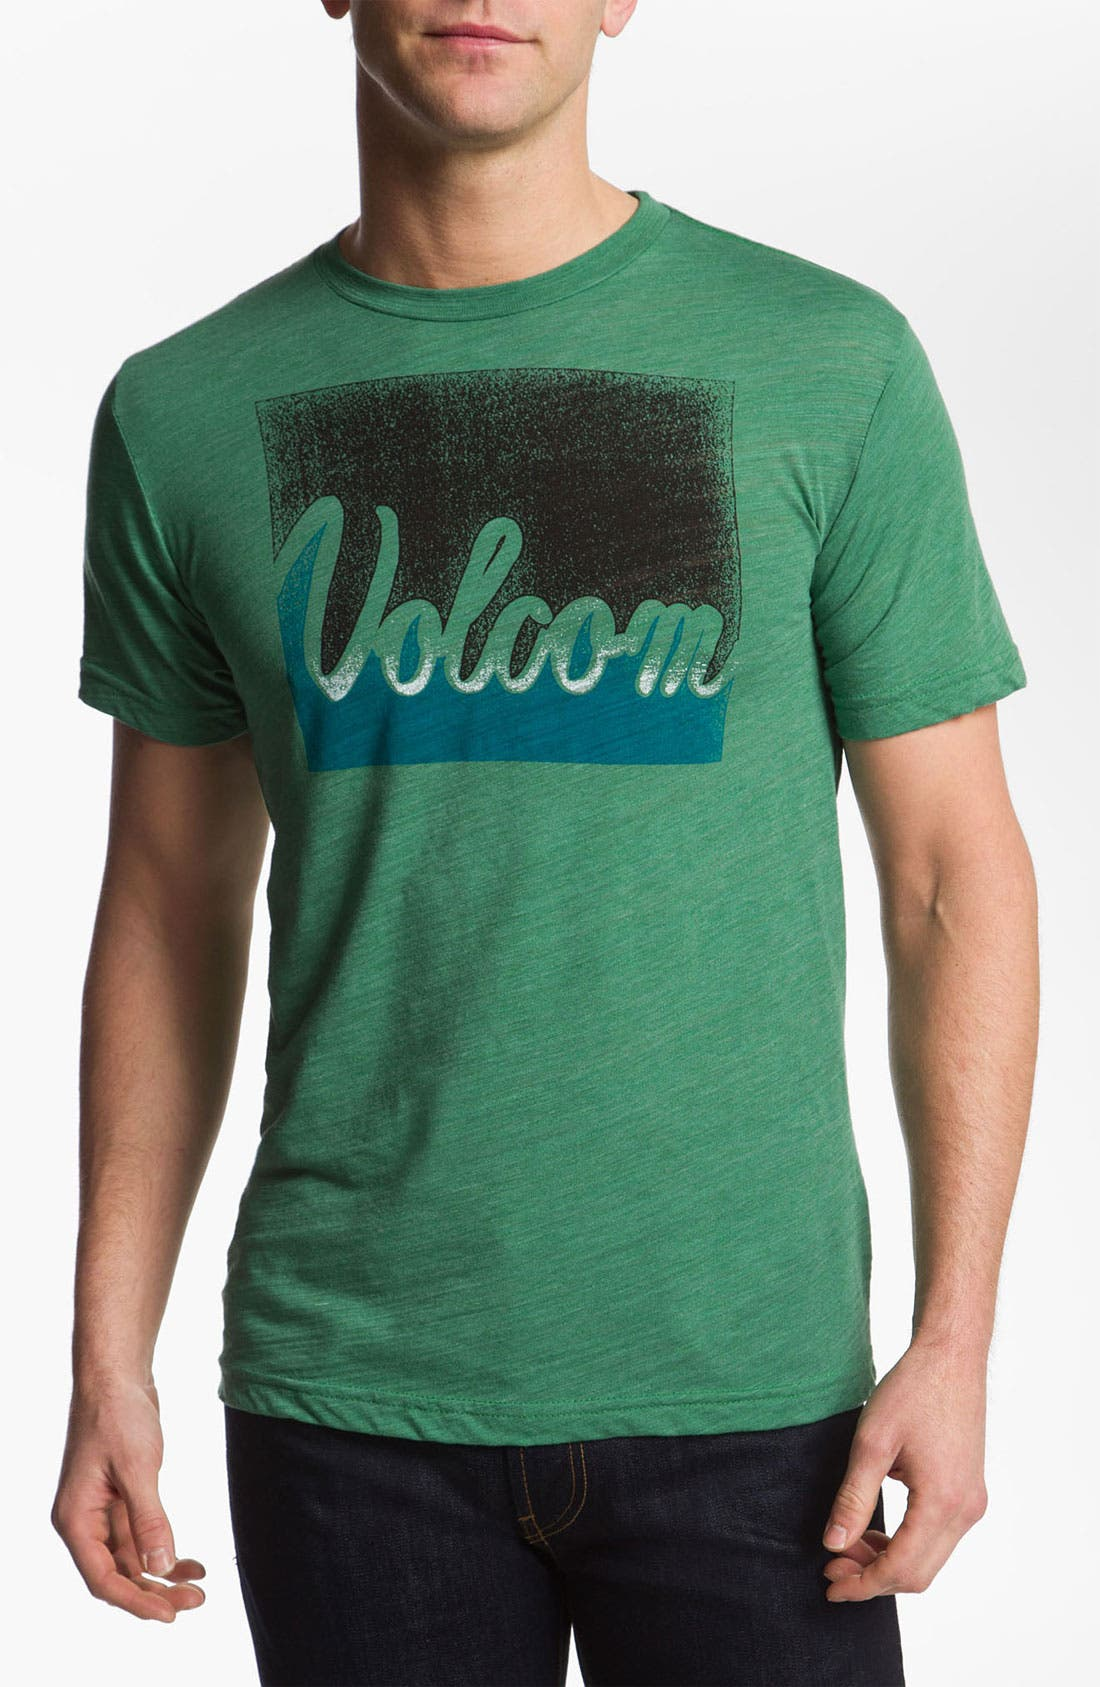 Alternate Image 1 Selected - Volcom 'Leave' Graphic T-Shirt